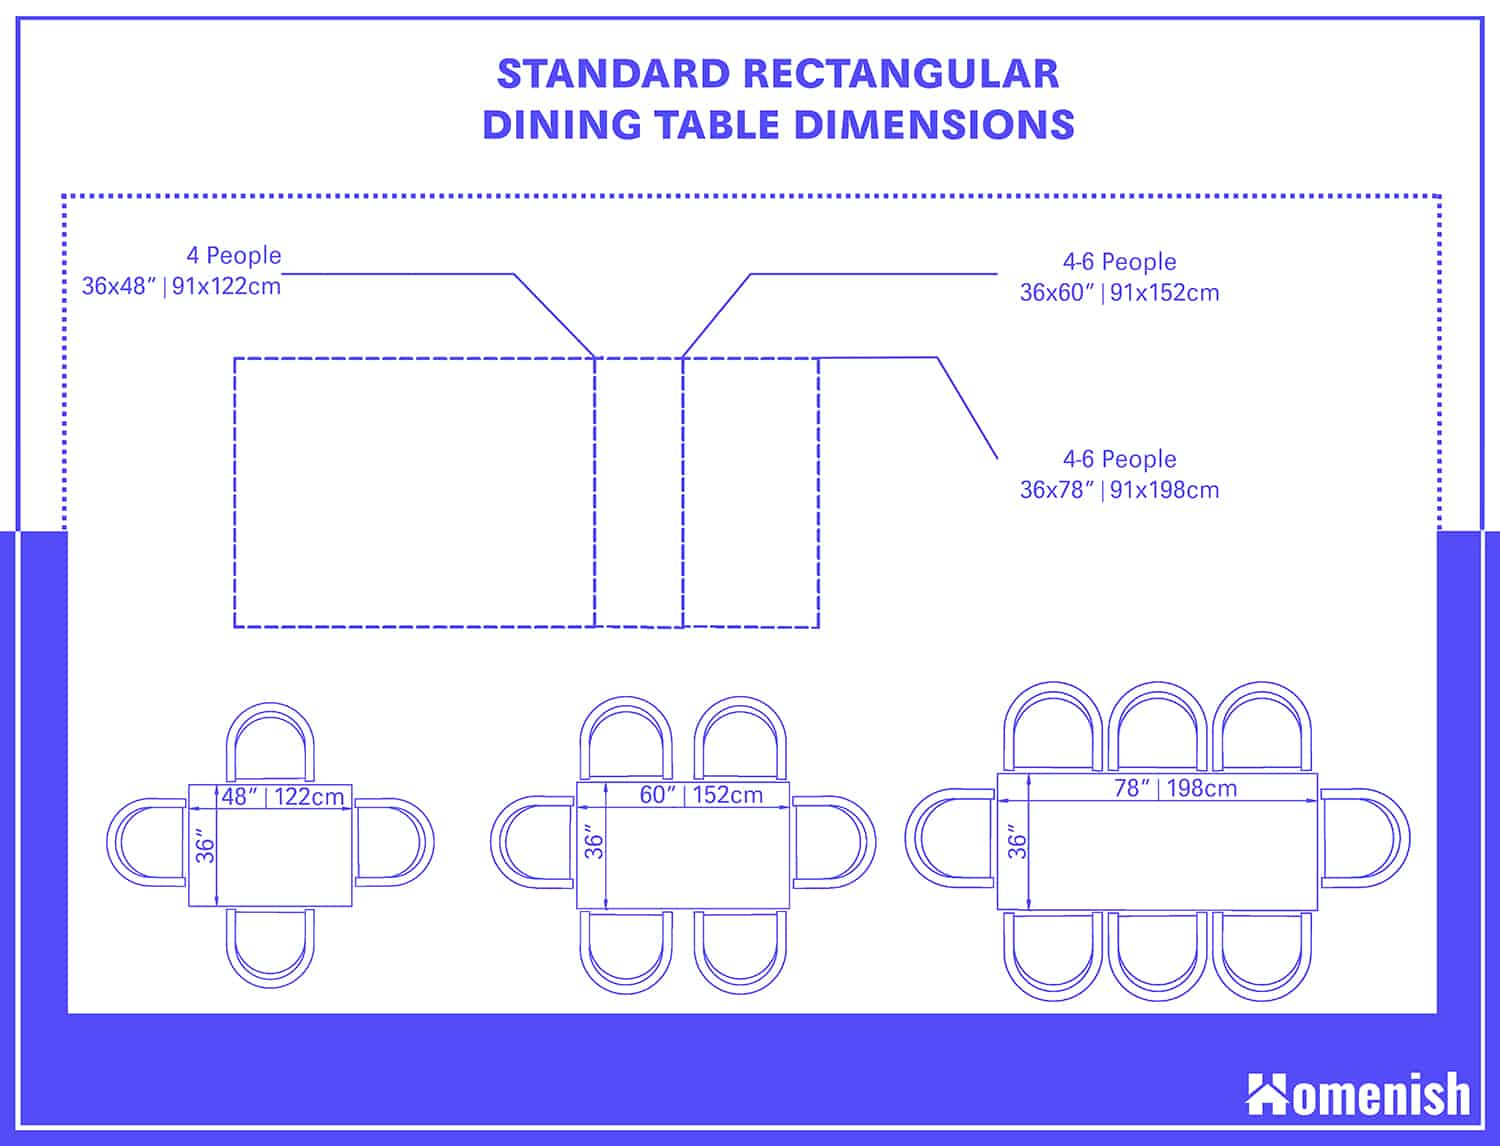 Standard Rectangular Dining Table Dimensions